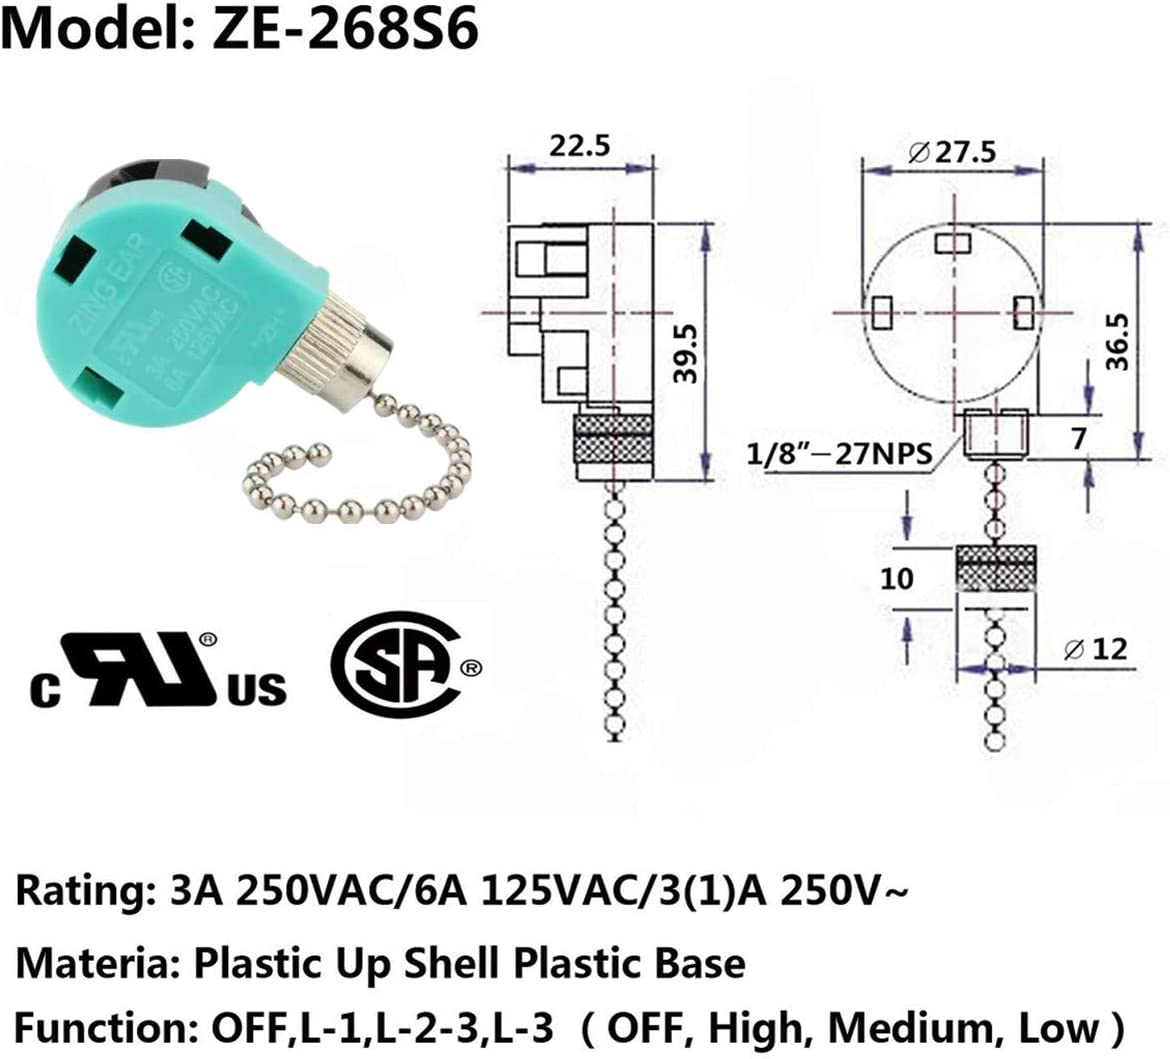 3 Wire Ceiling Fan Capacitor Wiring Diagram from images-na.ssl-images-amazon.com